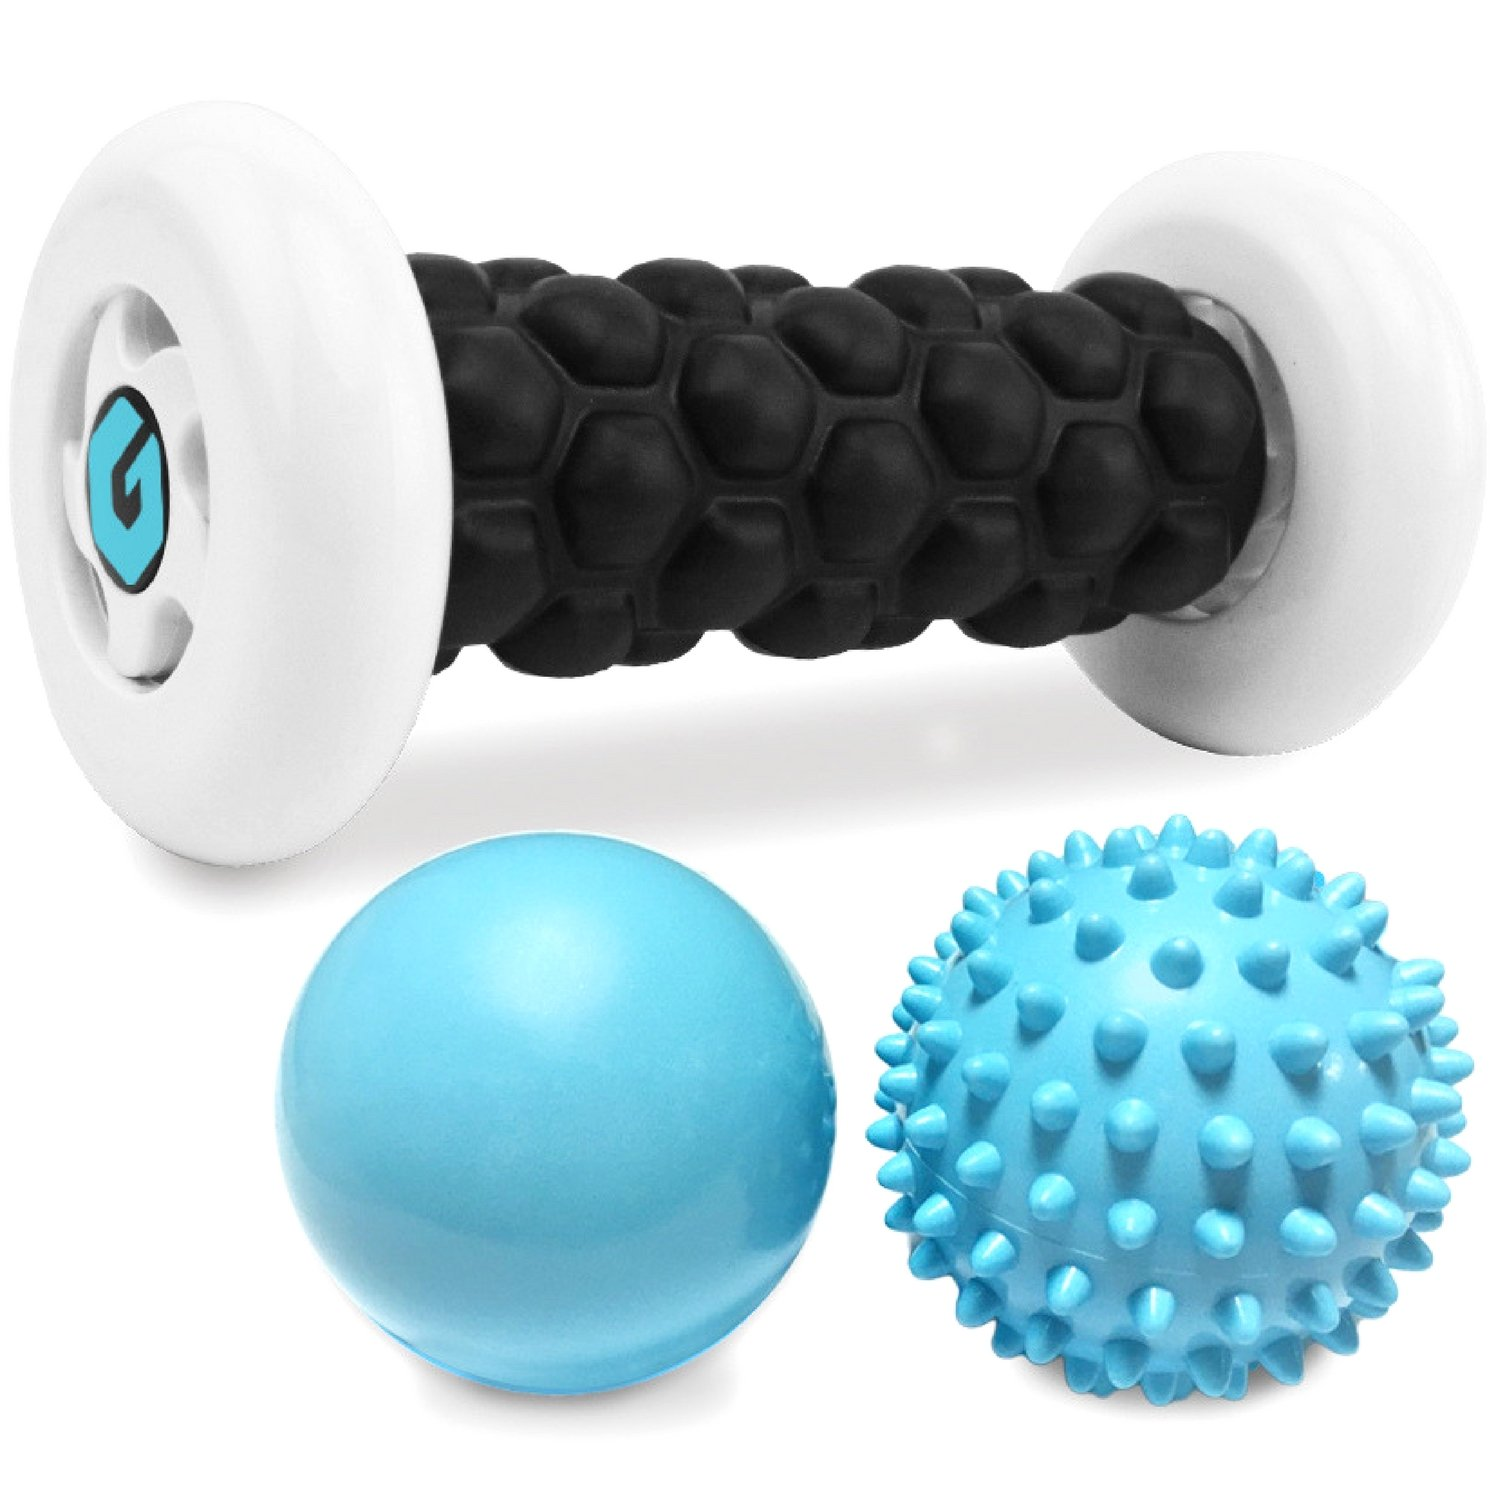 Plantar Fasciitis Foot Recovery Set - Includes Foot Massager Roller and 2 Cold Therapy Massage Balls - Pain Relief via Reflexology, Acupressure, Trigger Point Therapy, Mobility, Myofascial Release by Gillsun Fitness